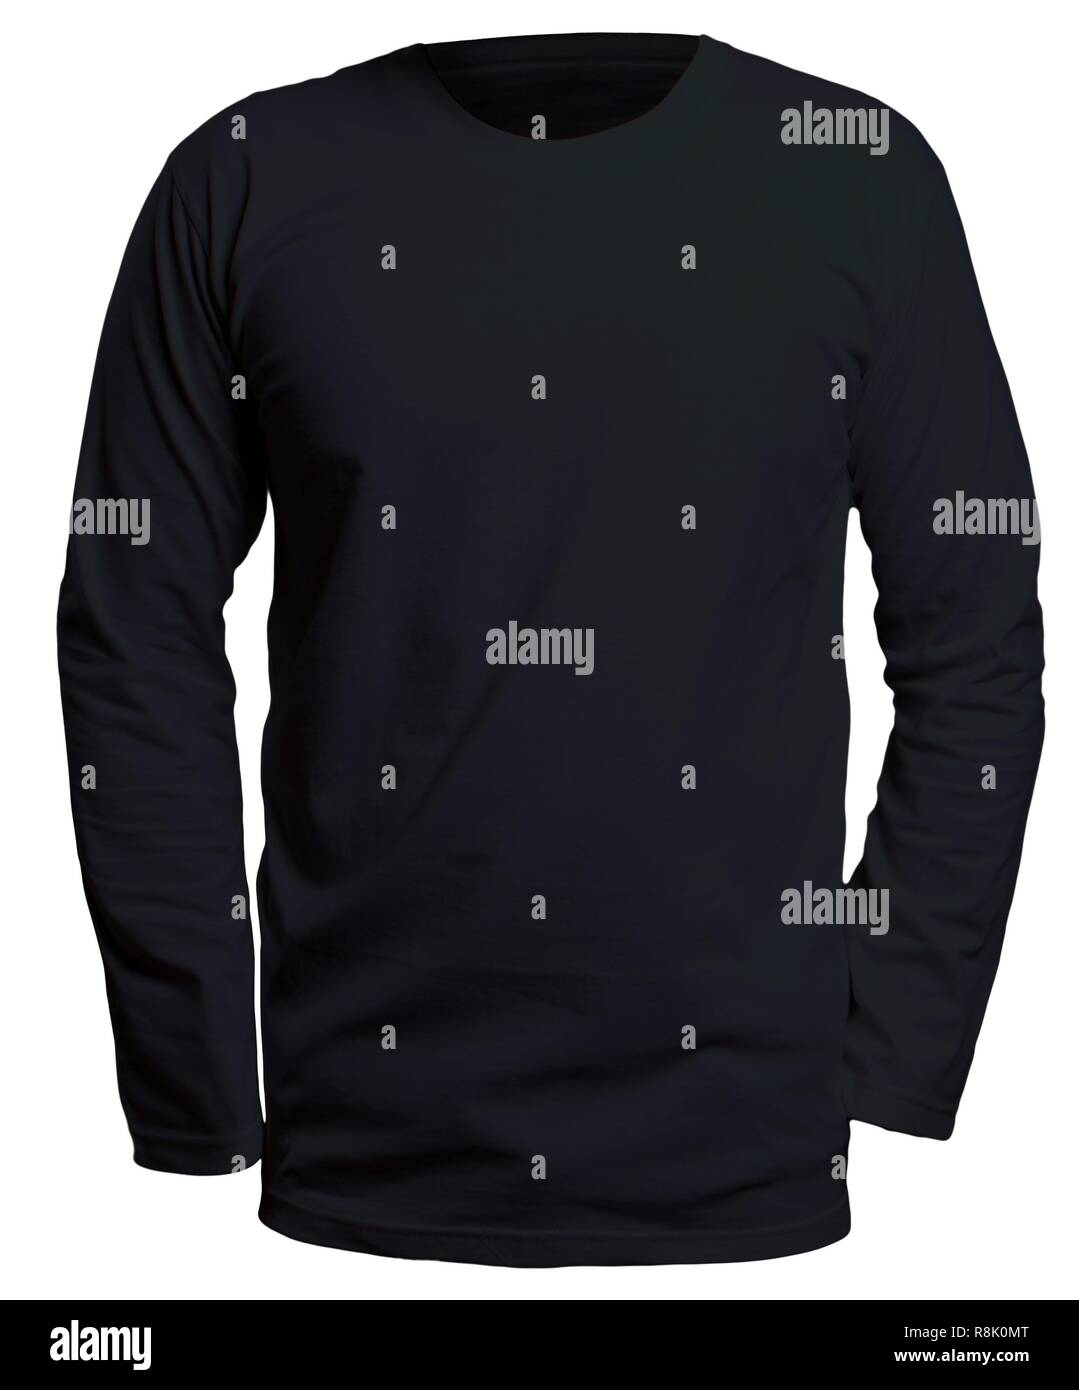 Blank Long Sleve Shirt Mock Up Template Front View Isolated On